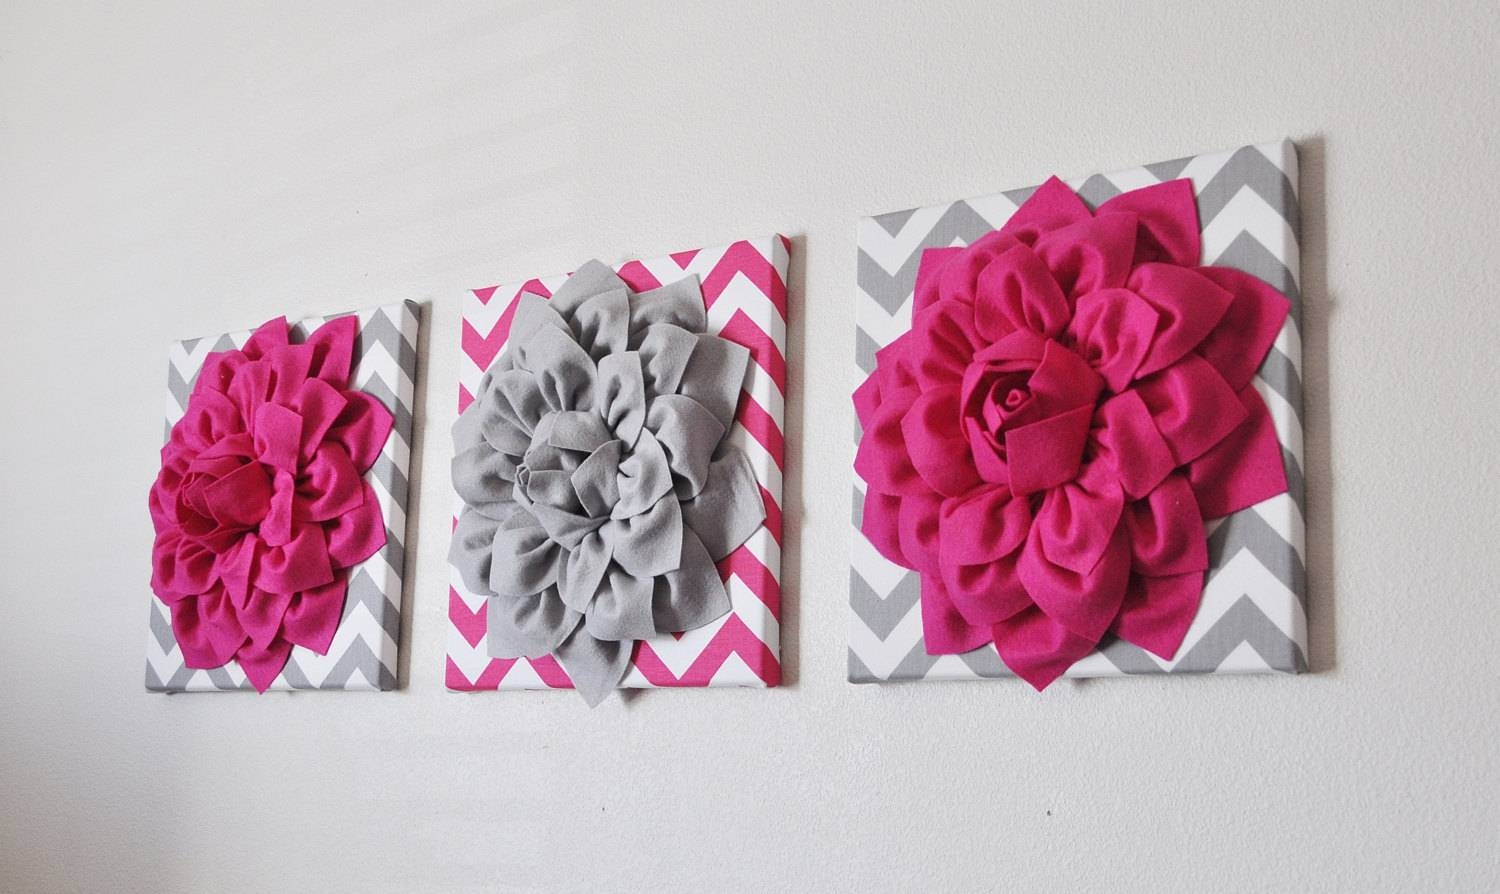 Custom Nursery Decor Flower Wall Art Hot Pink And Grey Throughout Most Recent Pink Flower Wall Art (View 8 of 20)